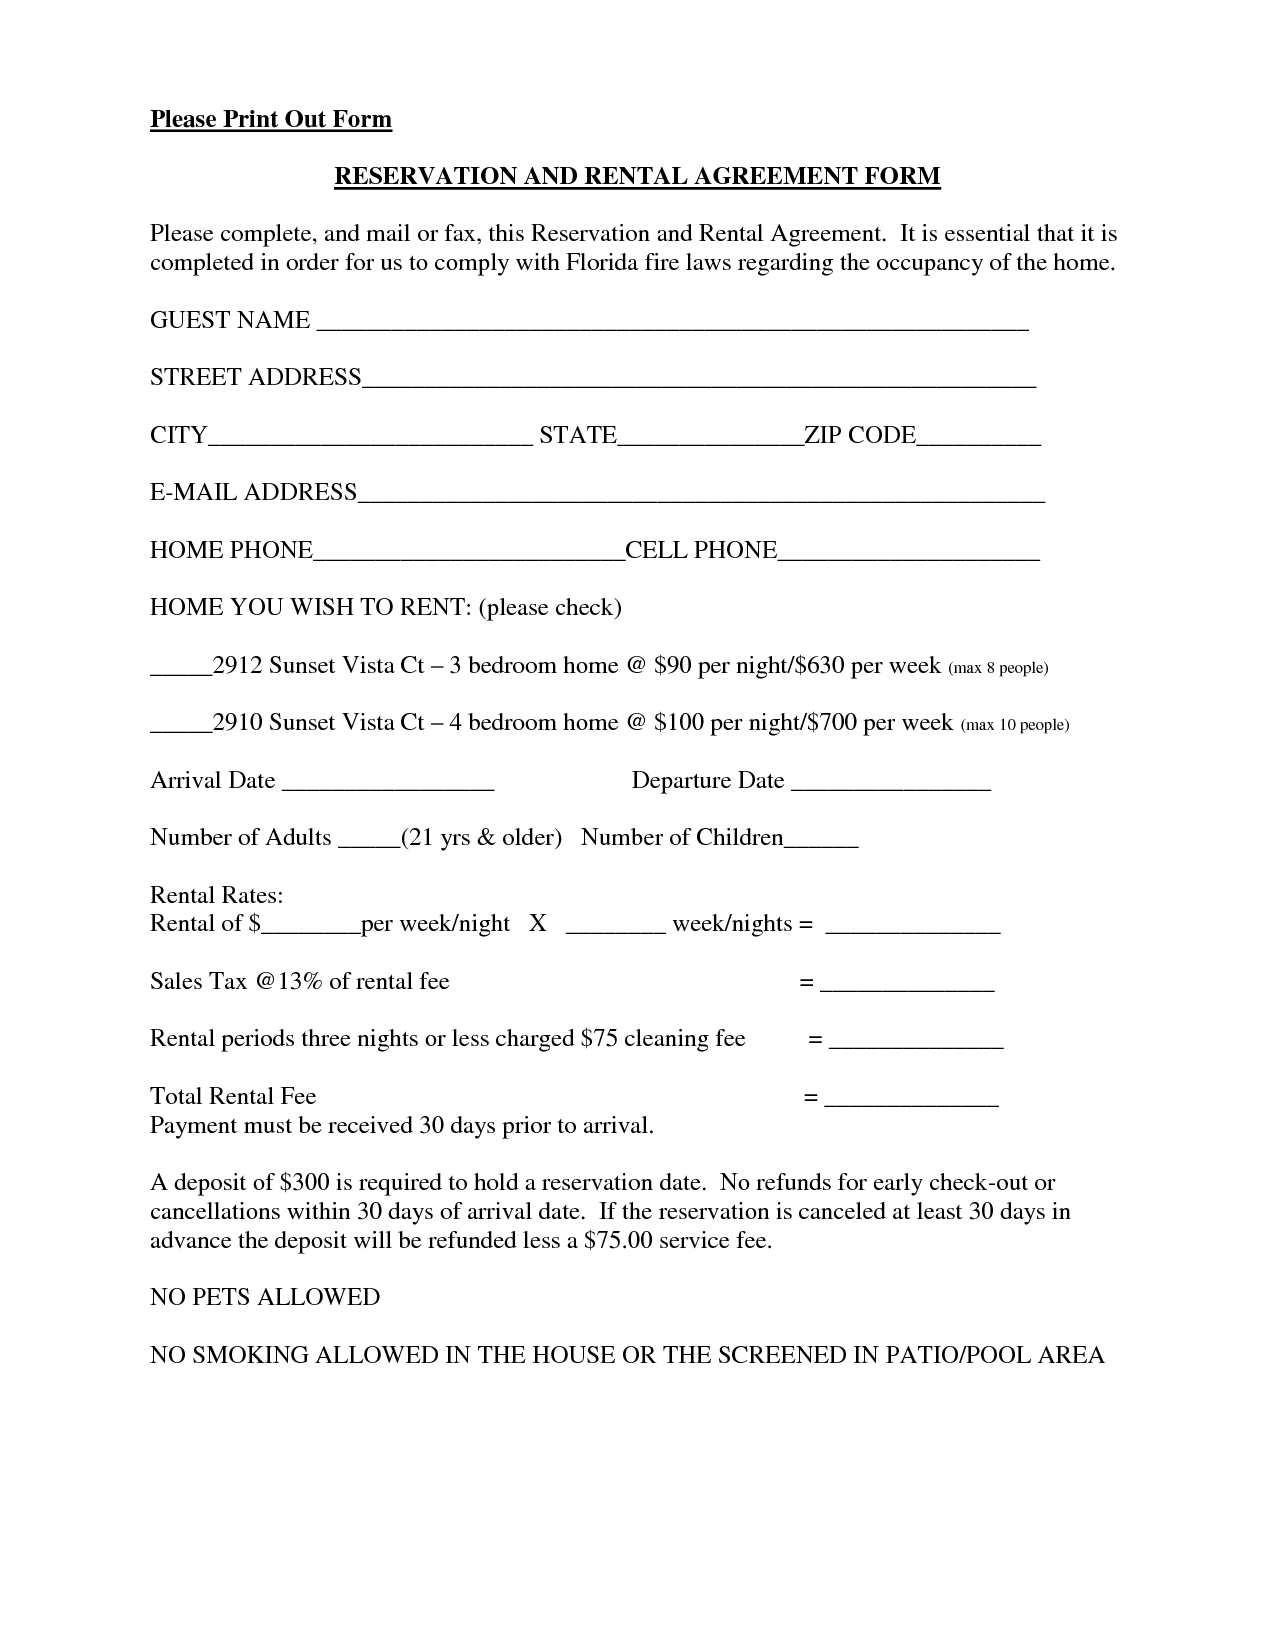 Free Lease Agreement Template For Renting A Room Forum Lease Agreement Form Https 75maingroup Com Rent Agreement Format